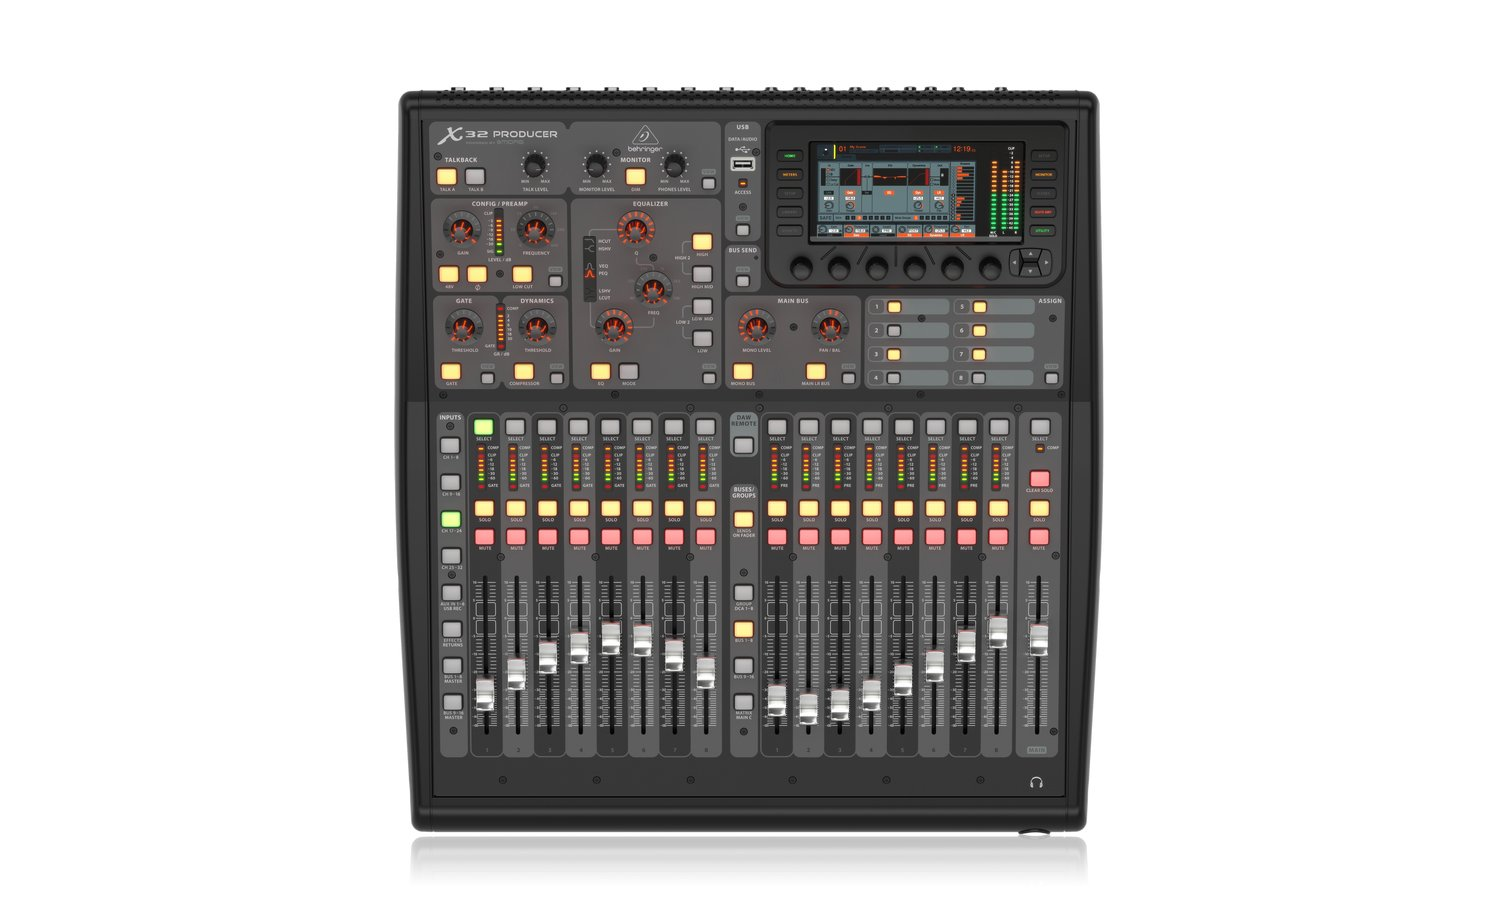 behringer x32 producer 40 channel 25 bus digital mixer with 16 microphone preamps full compass. Black Bedroom Furniture Sets. Home Design Ideas